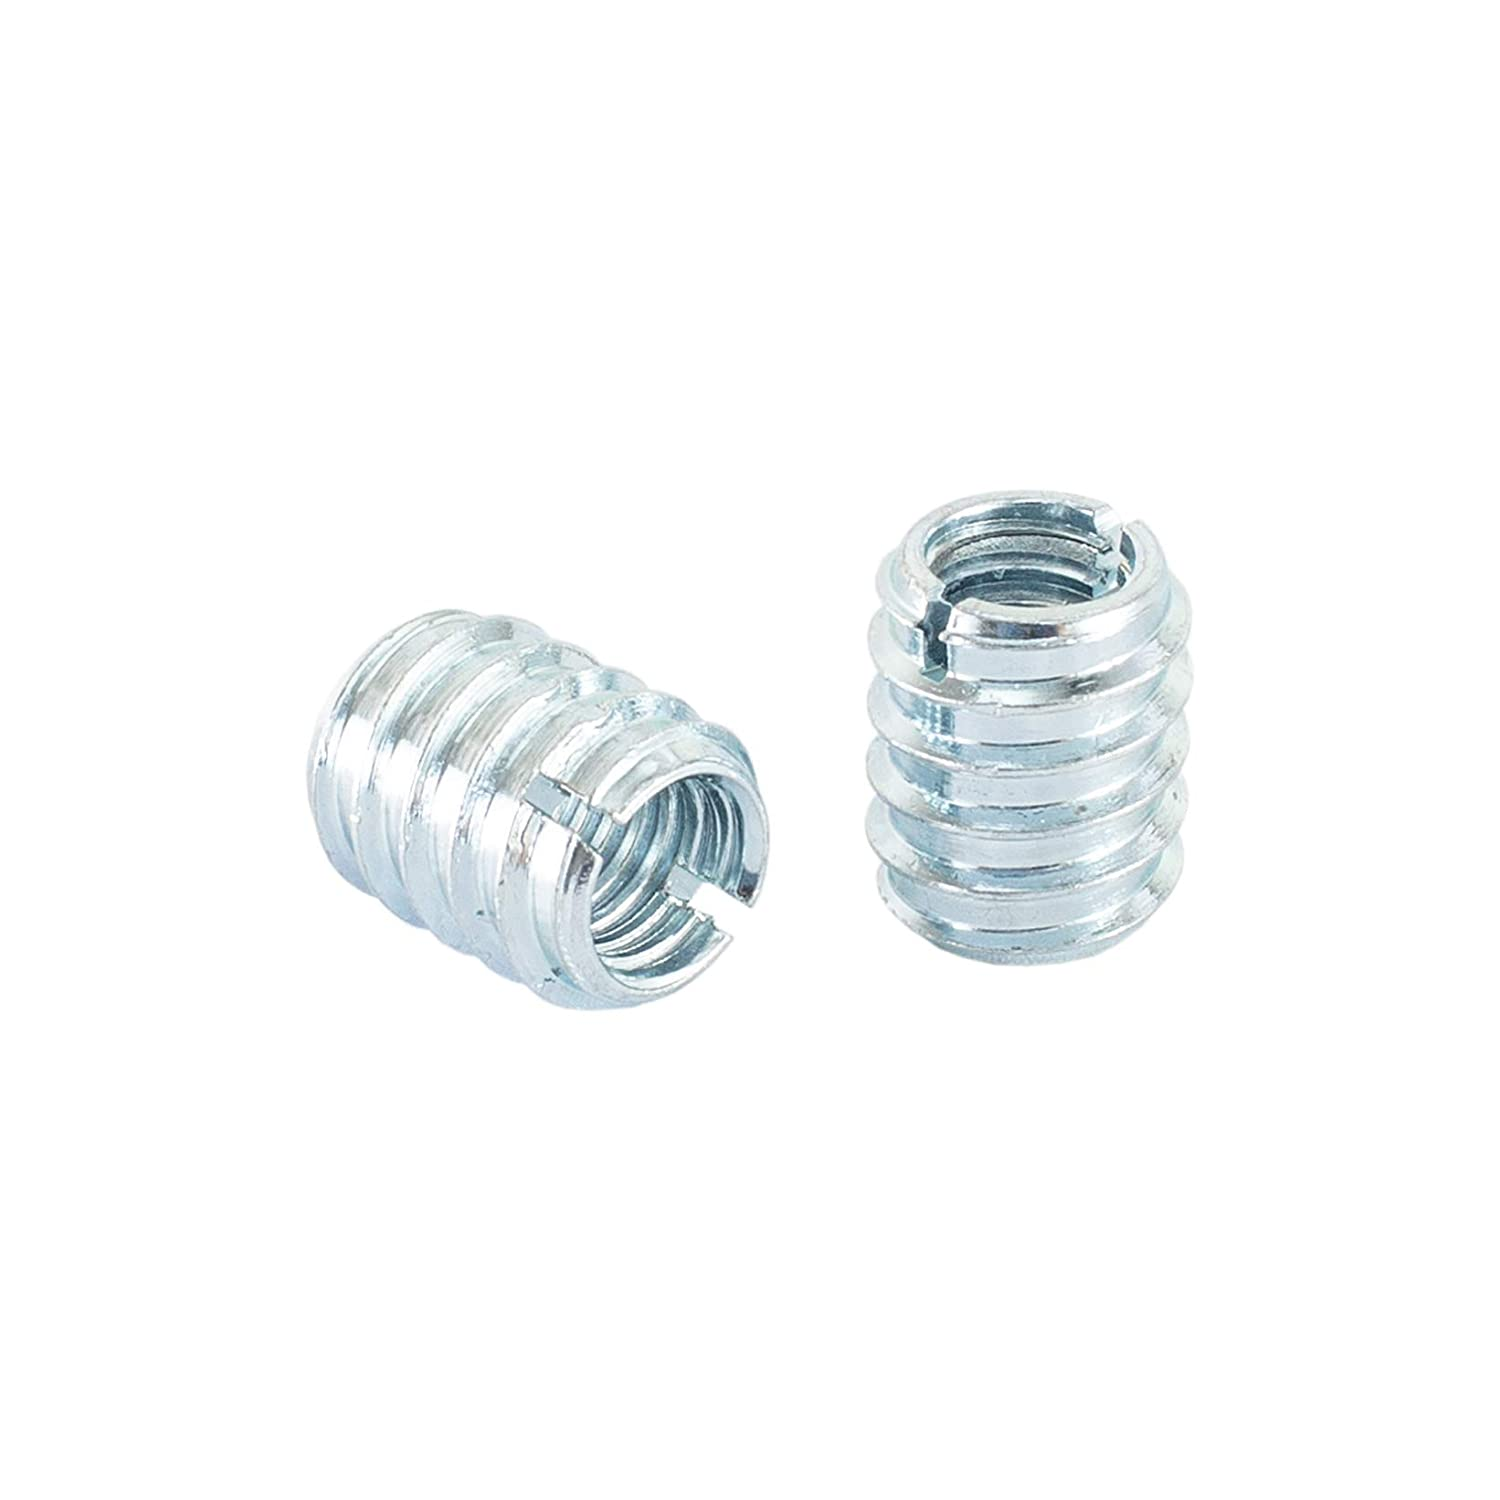 for Hard and Soft Wood and More Zinc Plated Screw-in Nut for